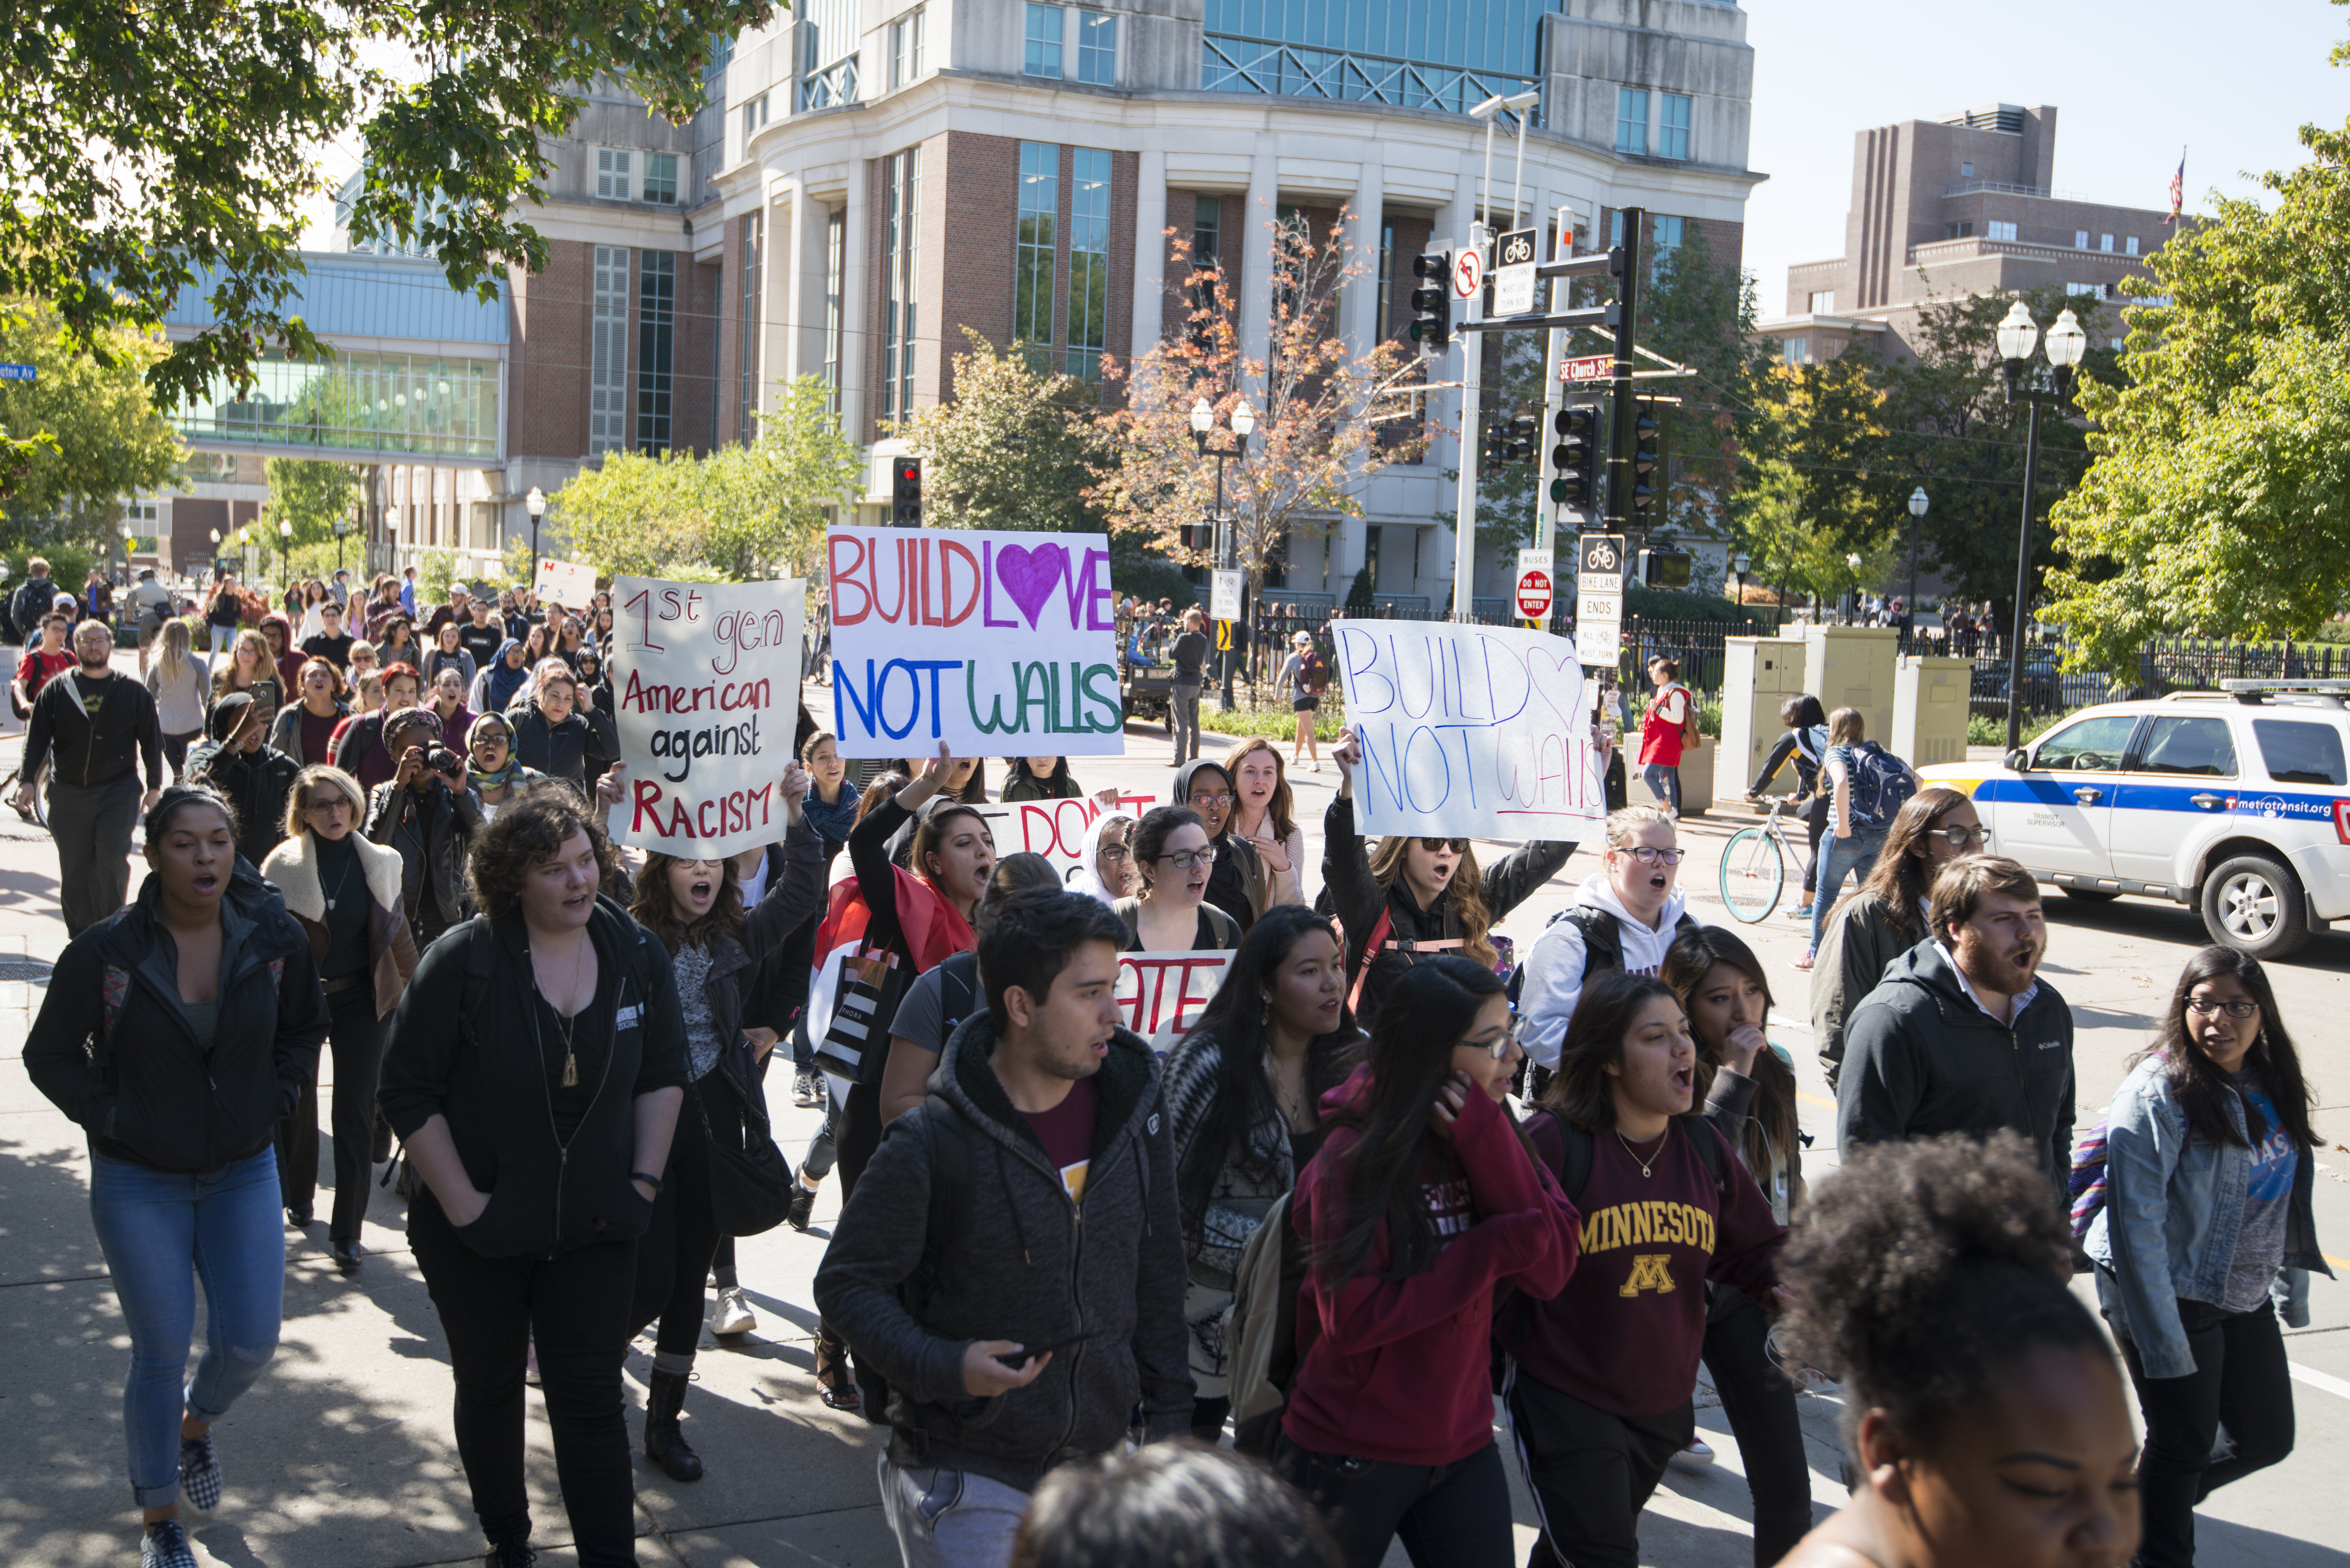 "Minneapolis, Minnesota October 6, 2016 About 200 Protesters Met Outside Coffman Memorial Union To Protest Episodes Of Racism And Bigotry On Campus. The Trigger Of The Protest Was The Painting Of A Mural By The College Republicans Student Group Prominently Displaying The Words ""build The Wall"", A Slogan Of Presidential Candidate Donald Trump. Protesters Denounced The Mural As Hate Speech, Saying It Targeted Minorities And Immigrants. University President Eric Kaler Acknowledged The Mural Was Offensive But Also Condemned The Anti-Trump Graffiti That Has Since Covered The Mural. The Protesters Voice A Number Of Complaints About President Eric Kaler, Such As Allowing The Washington Redskins To Play The The University And His Lack Of Concern For Students Of Color. 2016-10-06 This Is Licensed Under A Creative Commons Attribution License. Give Attribution To: Fibonacci Blue/Wikimedia Commons"